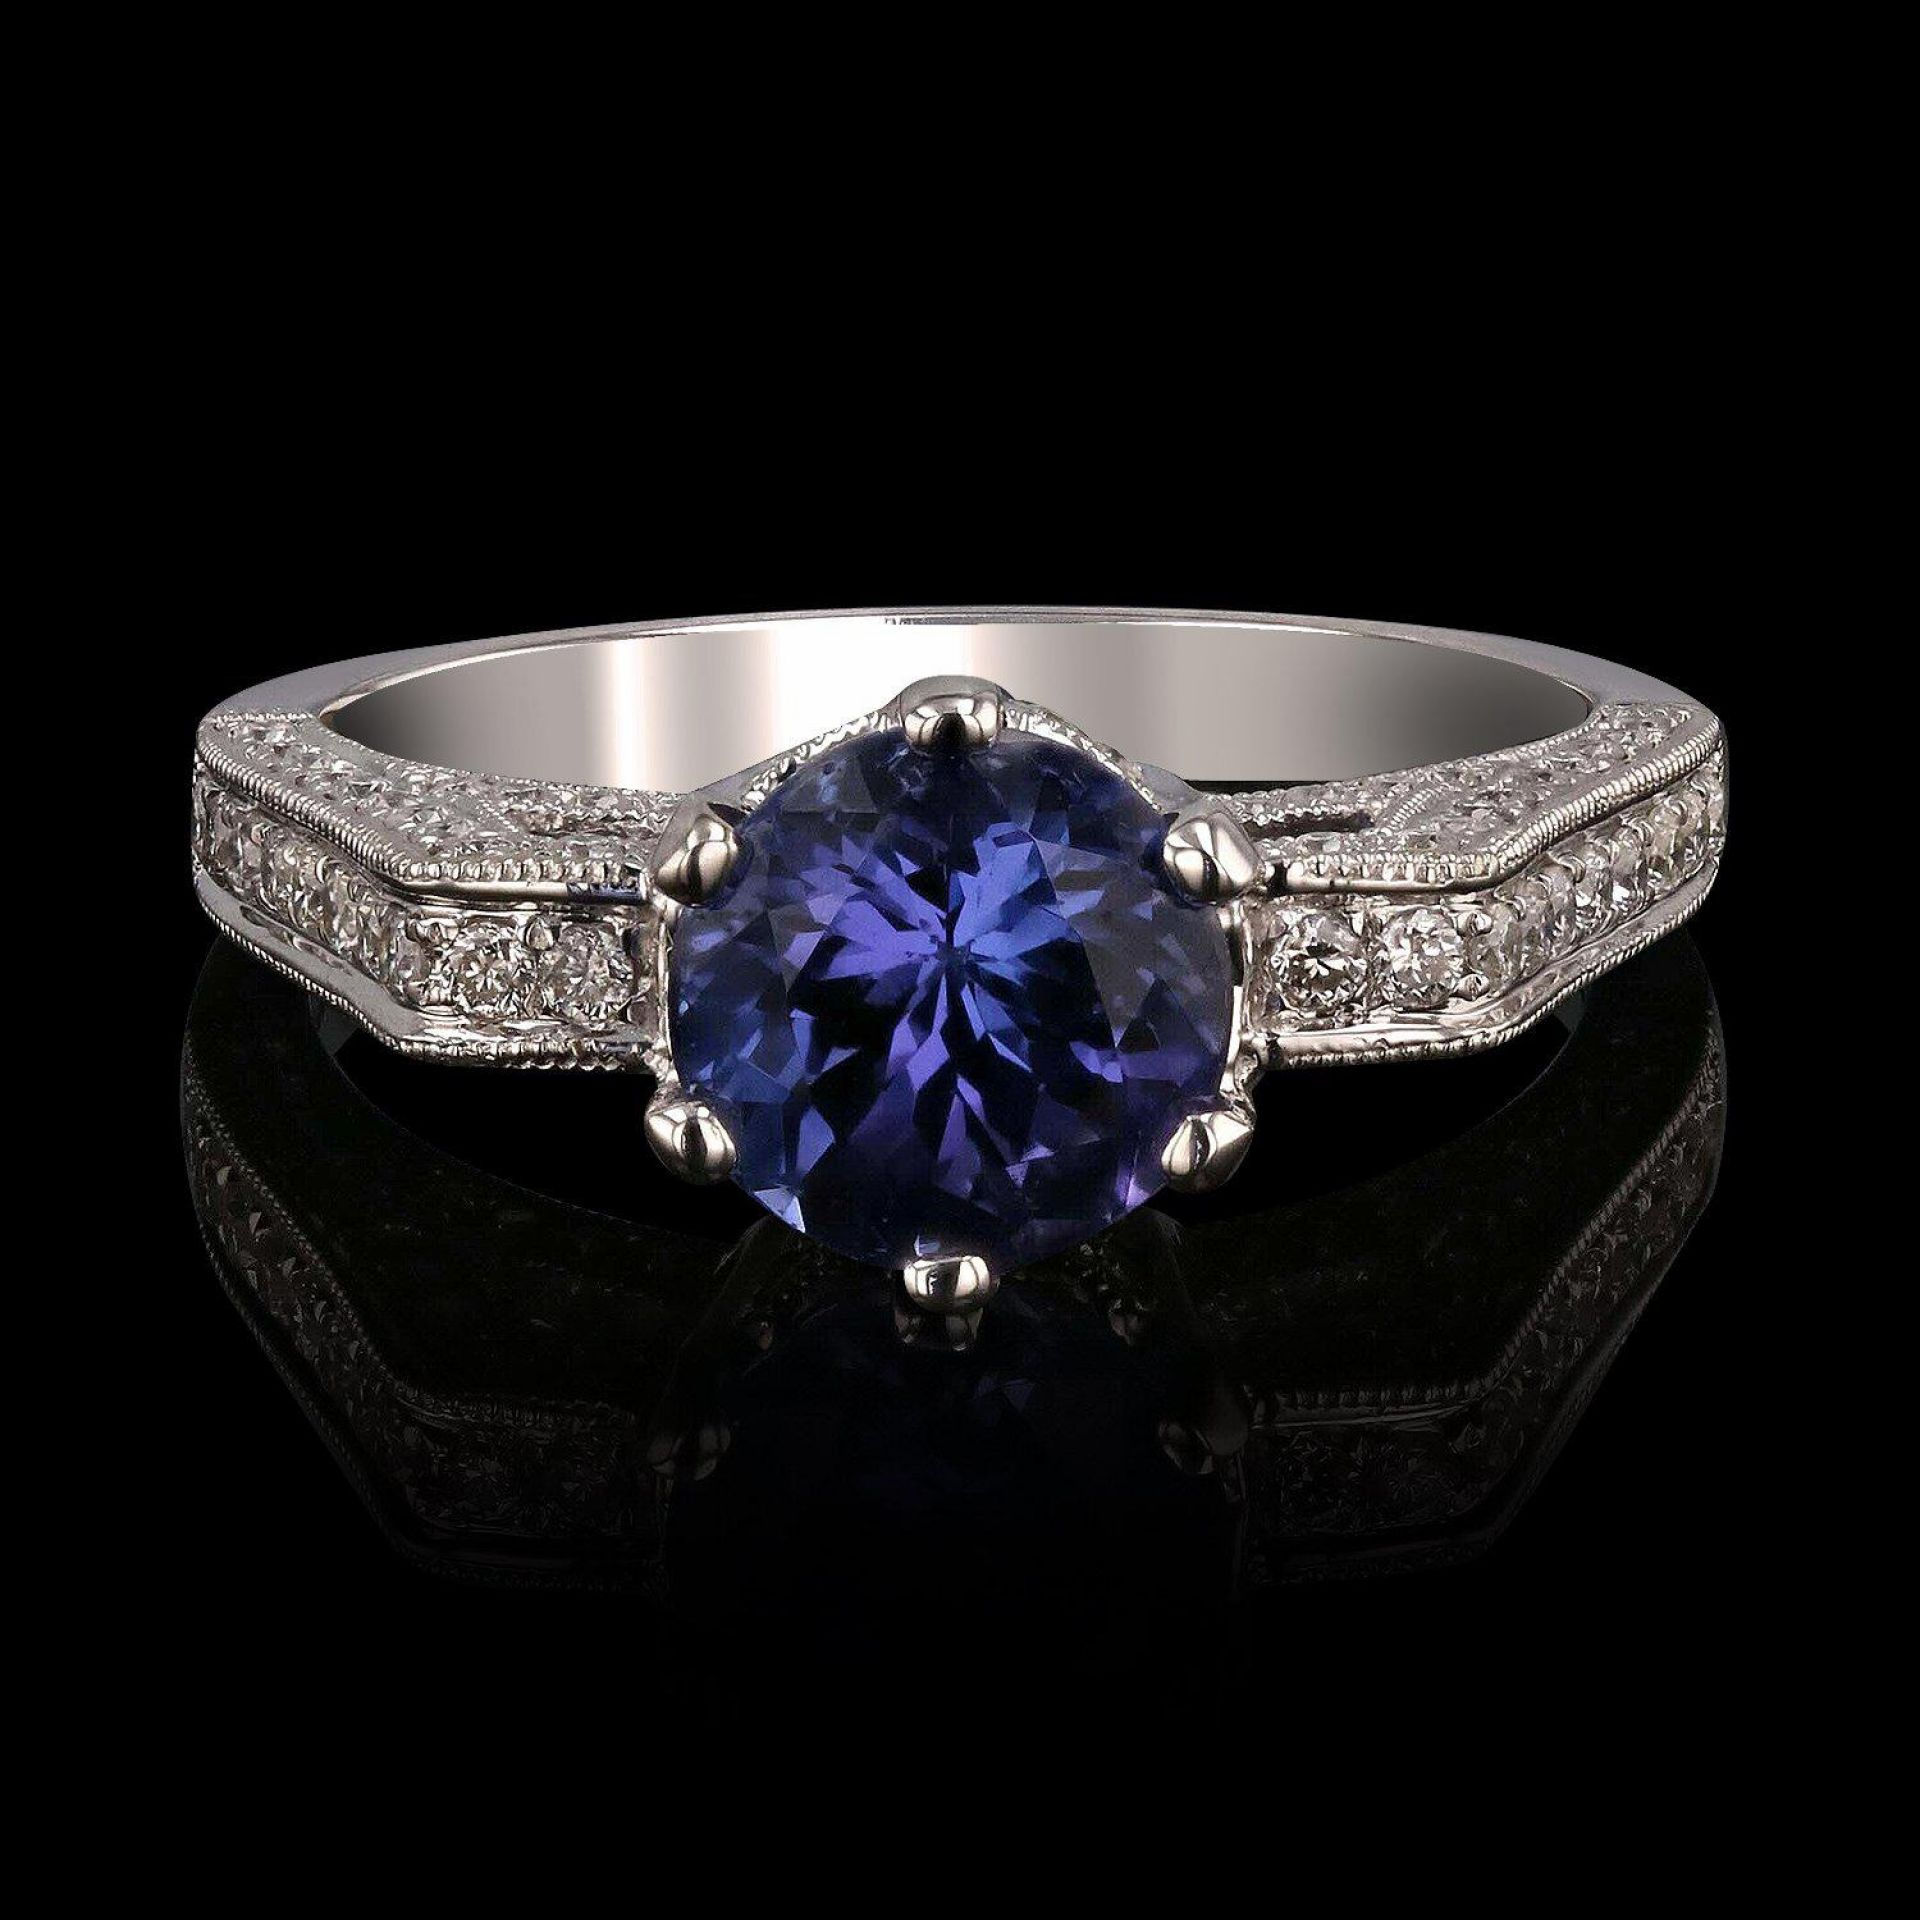 1.81ct Tanzanite and 0.46ctw Diamonds 14KT White Gold Ring